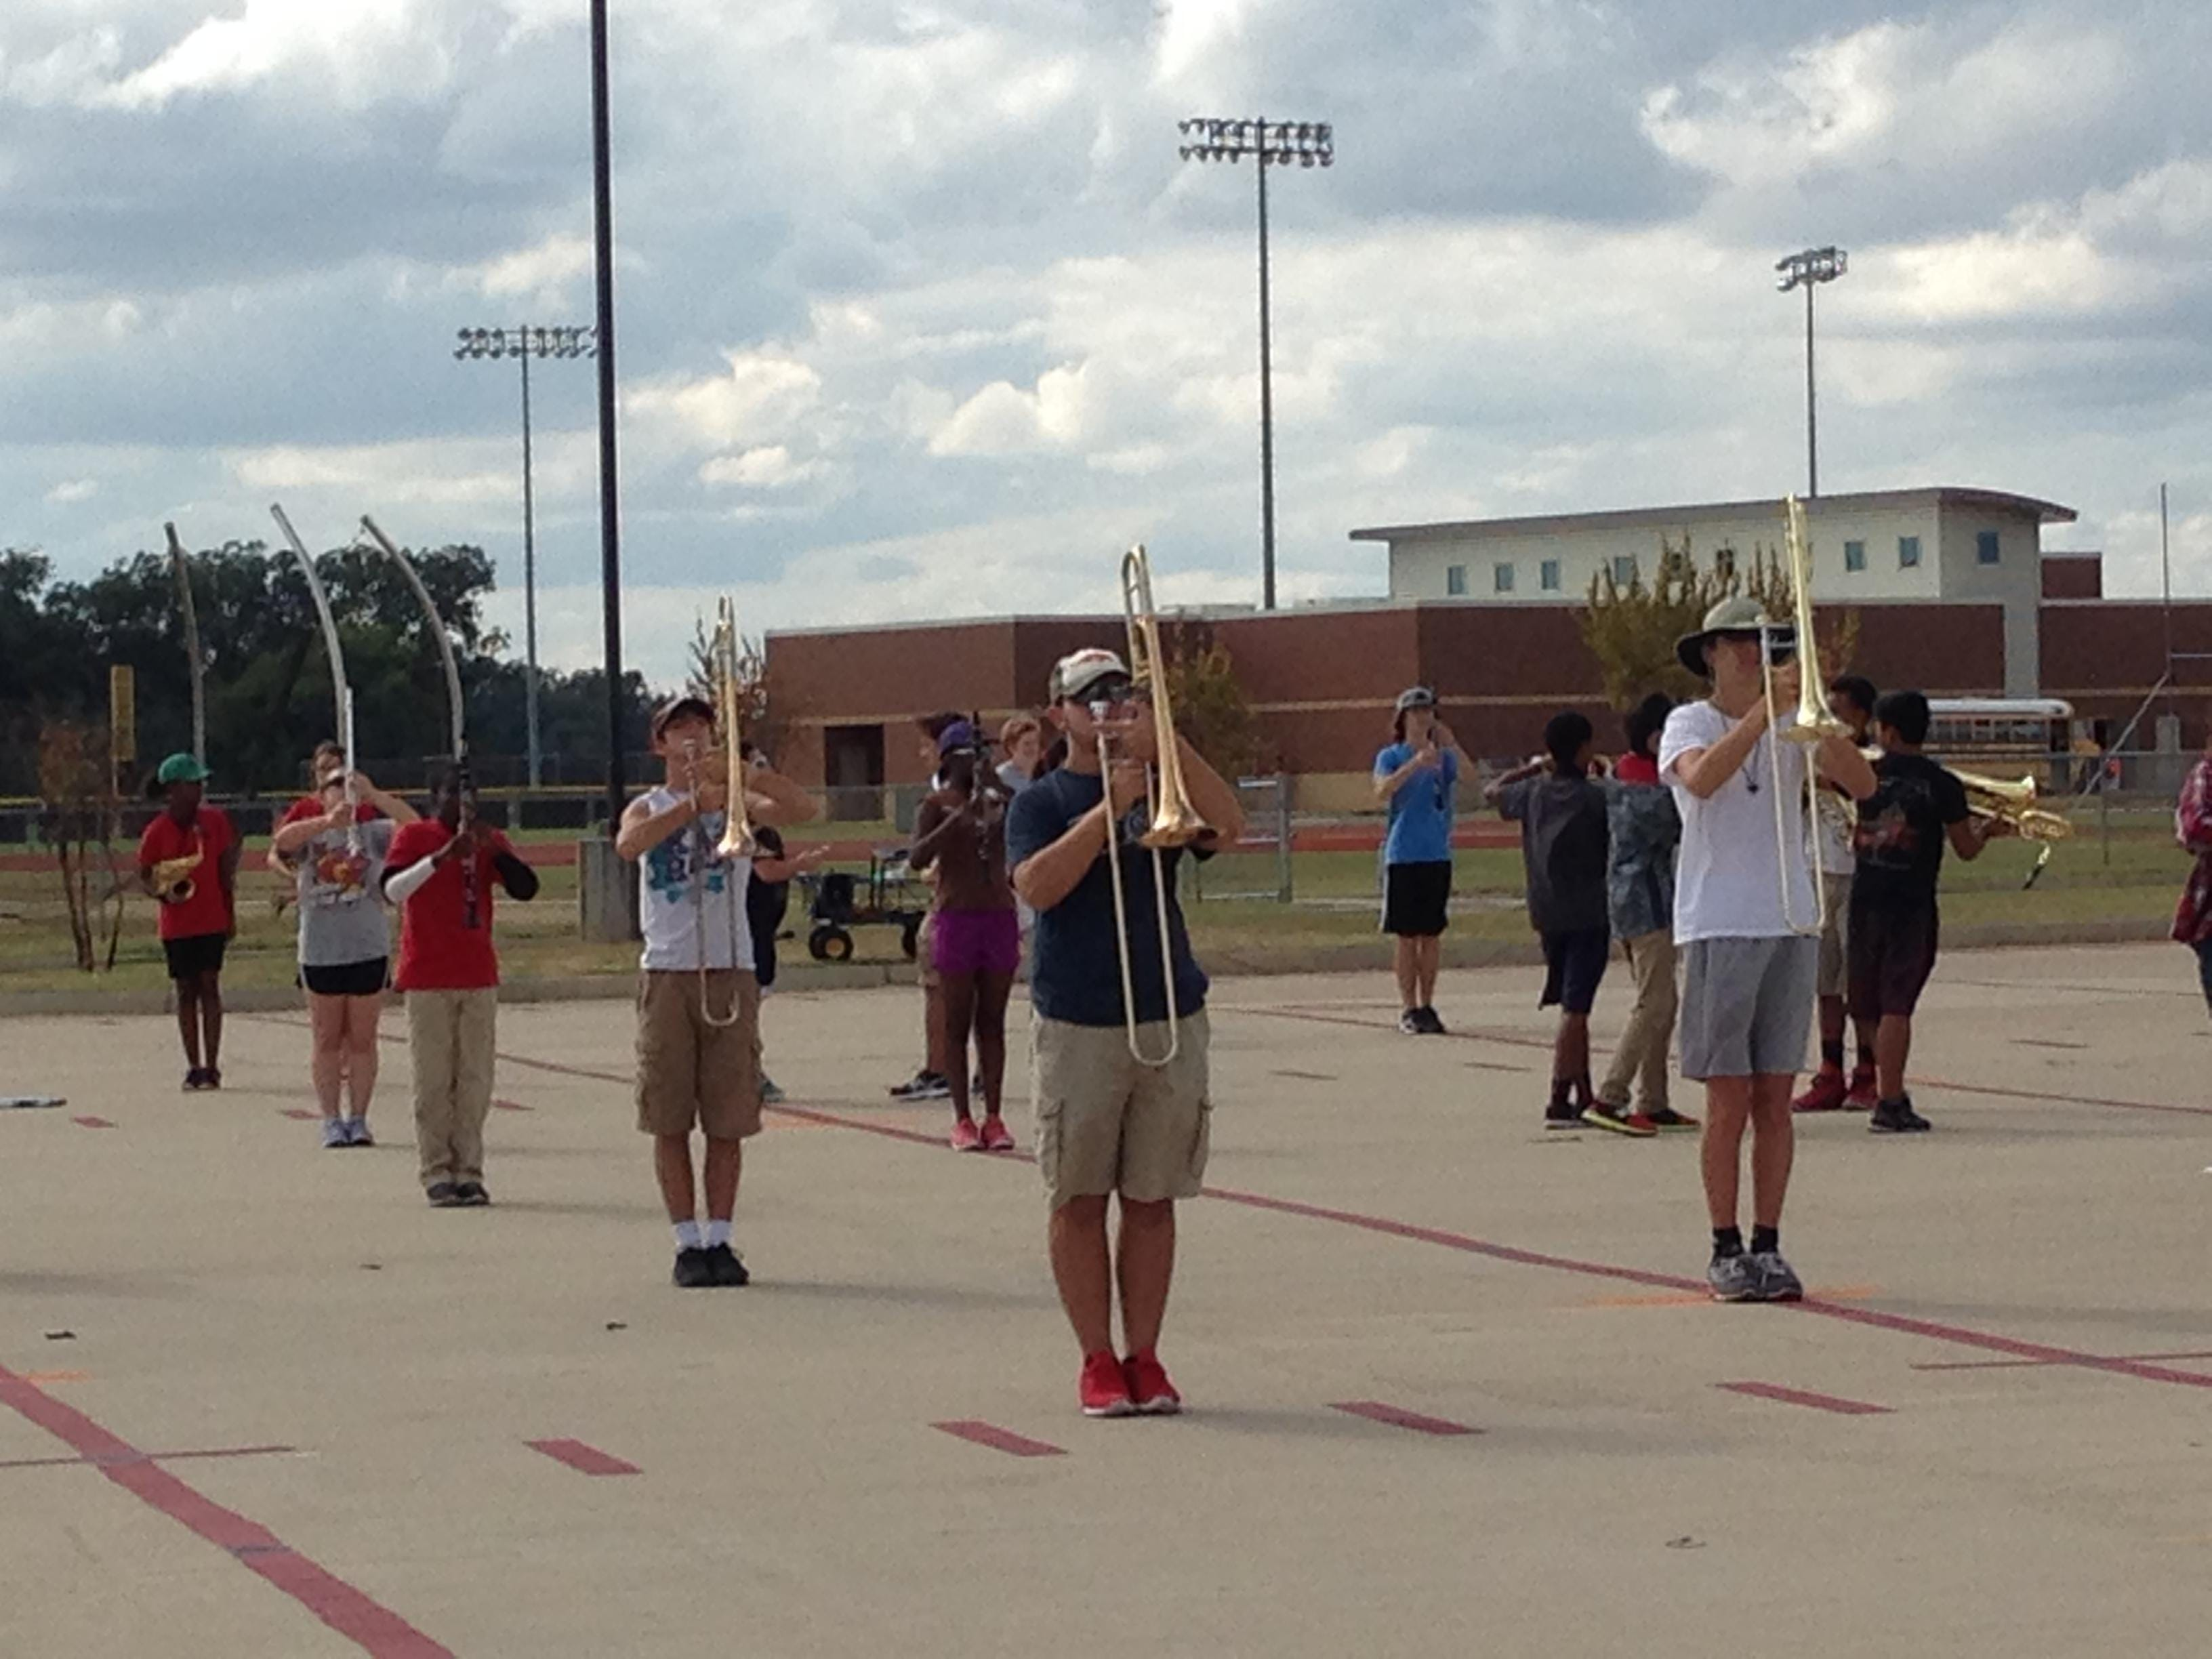 Parkway High School marching band rehearsal.